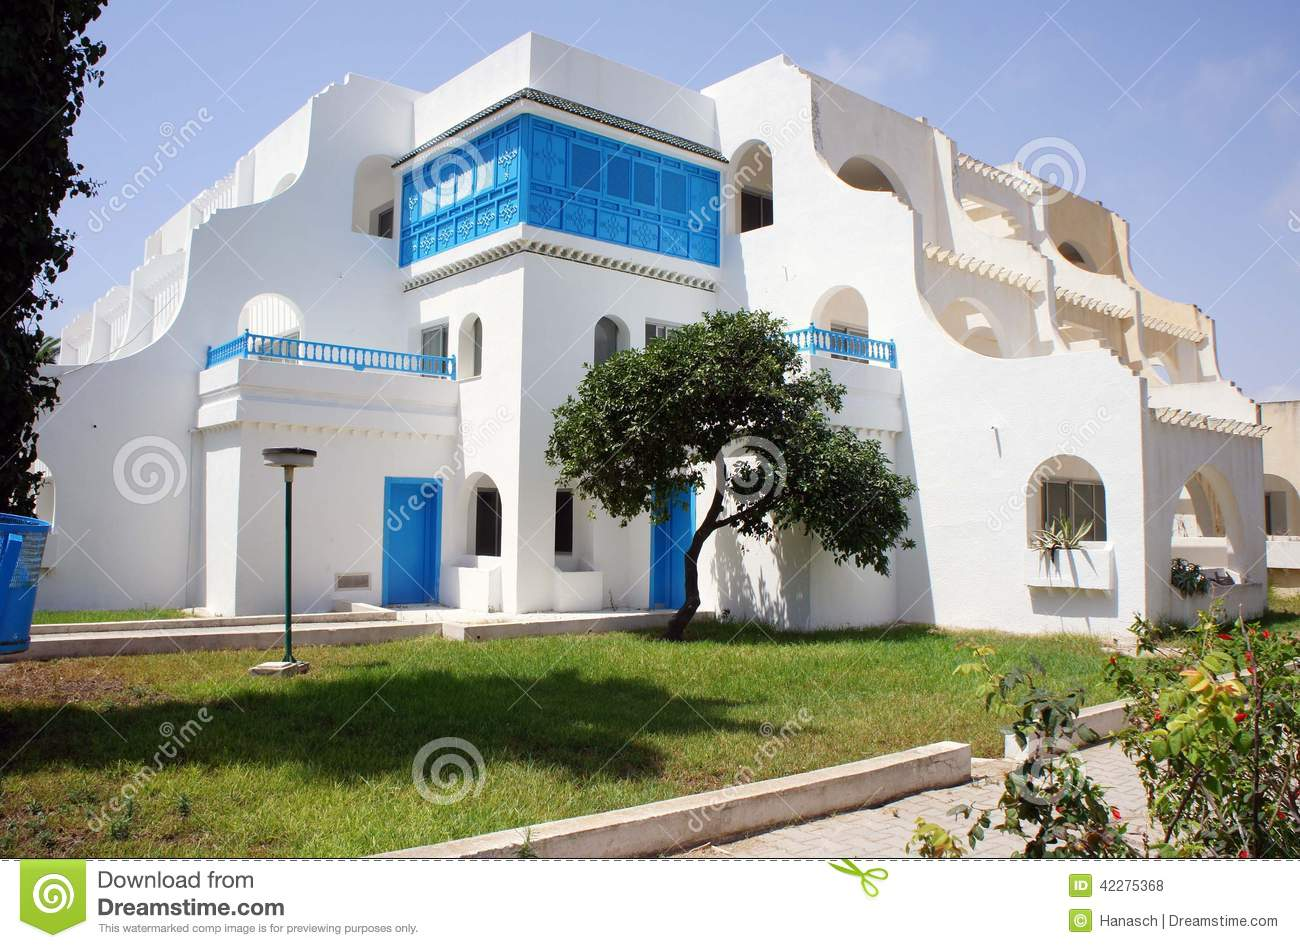 Maison de plage tunisienne photo stock image 42275368 for Architecture tunisienne maison